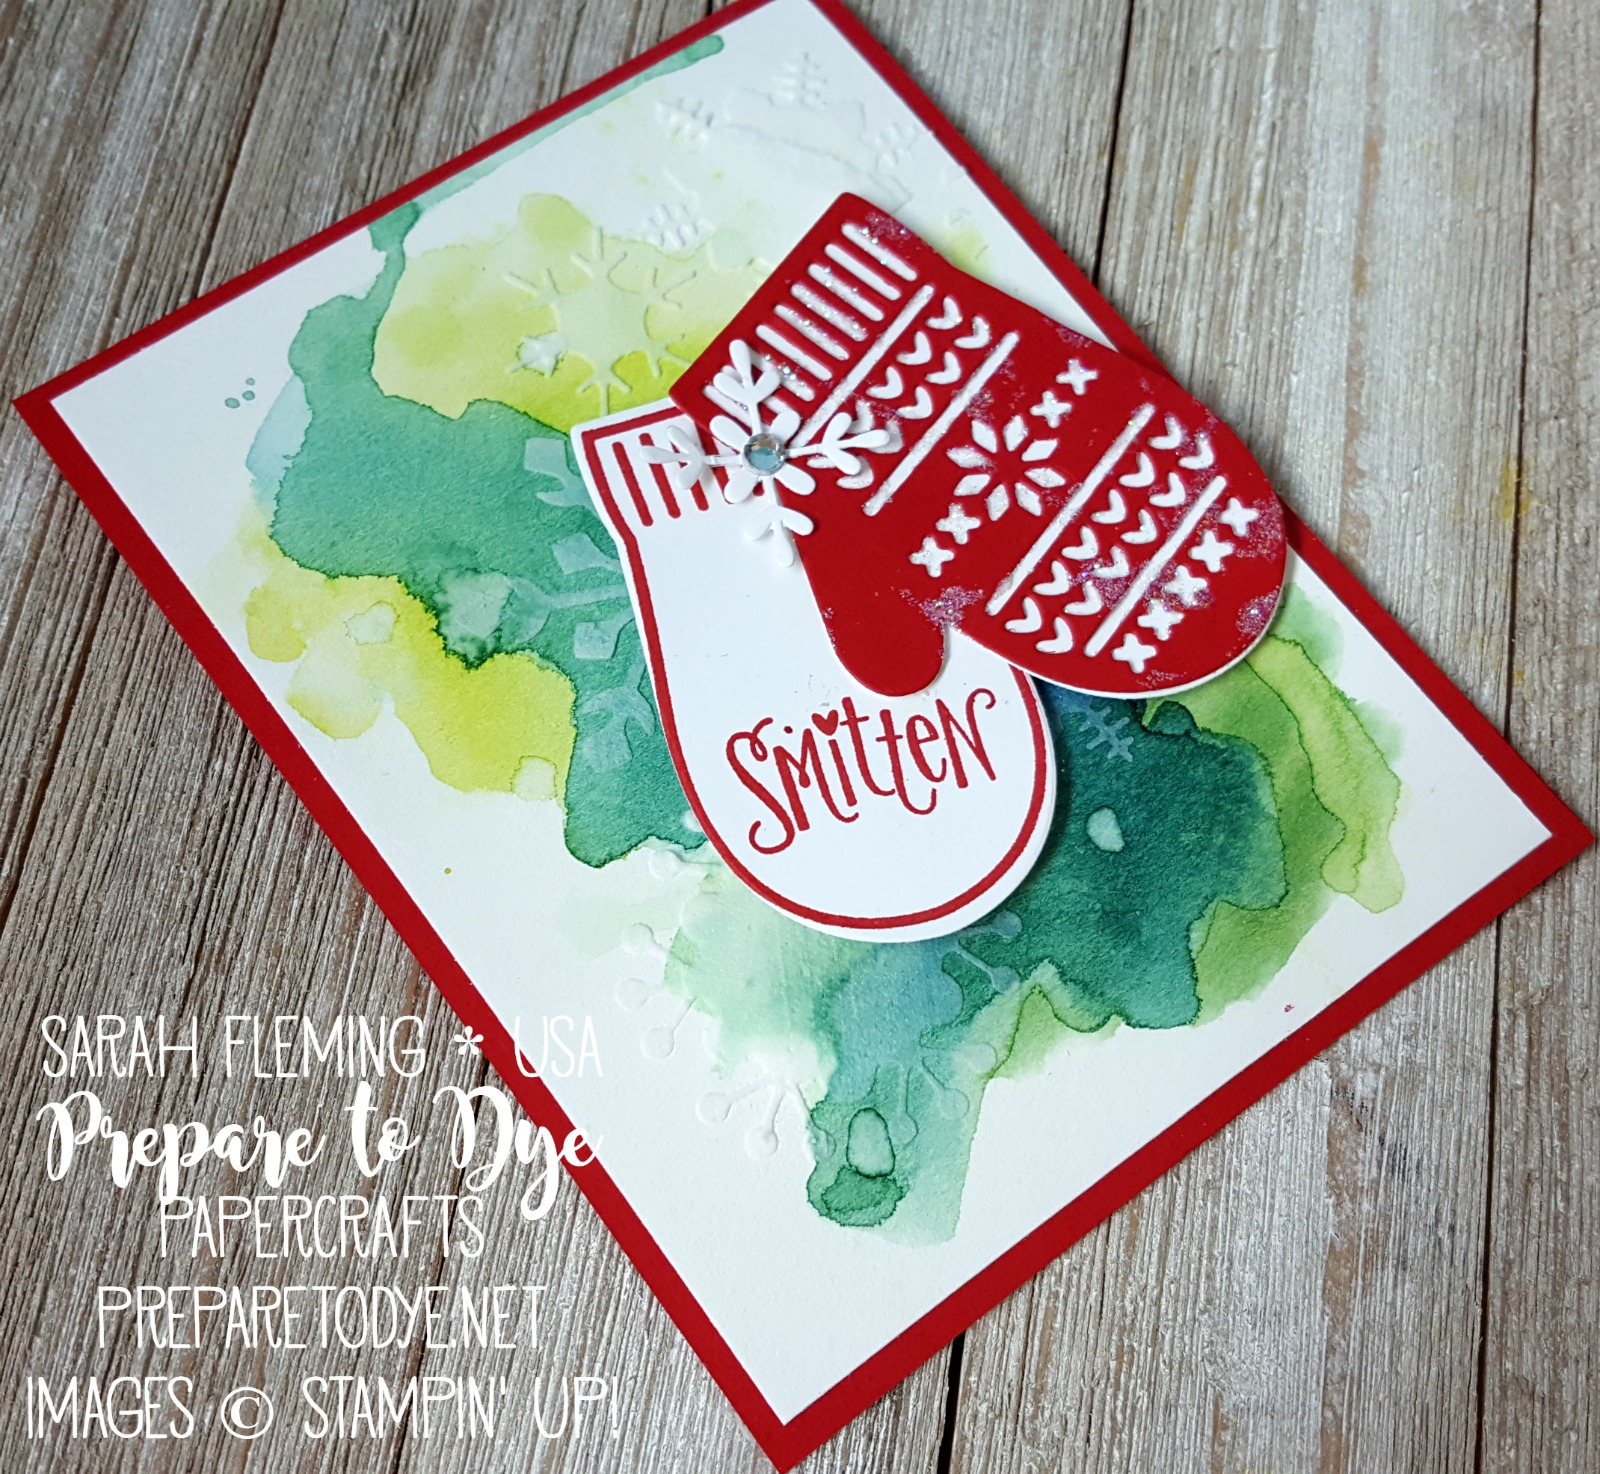 Stampin' Up! Smitten Mittens with watercolor wash and embossing paste - stencil made using Trim Your Stocking Thinlits, Seasonal Layers Thinlits, Swirly Snowflakes Thinlits - Sarah Fleming - Prepare to Dye Papercrafts